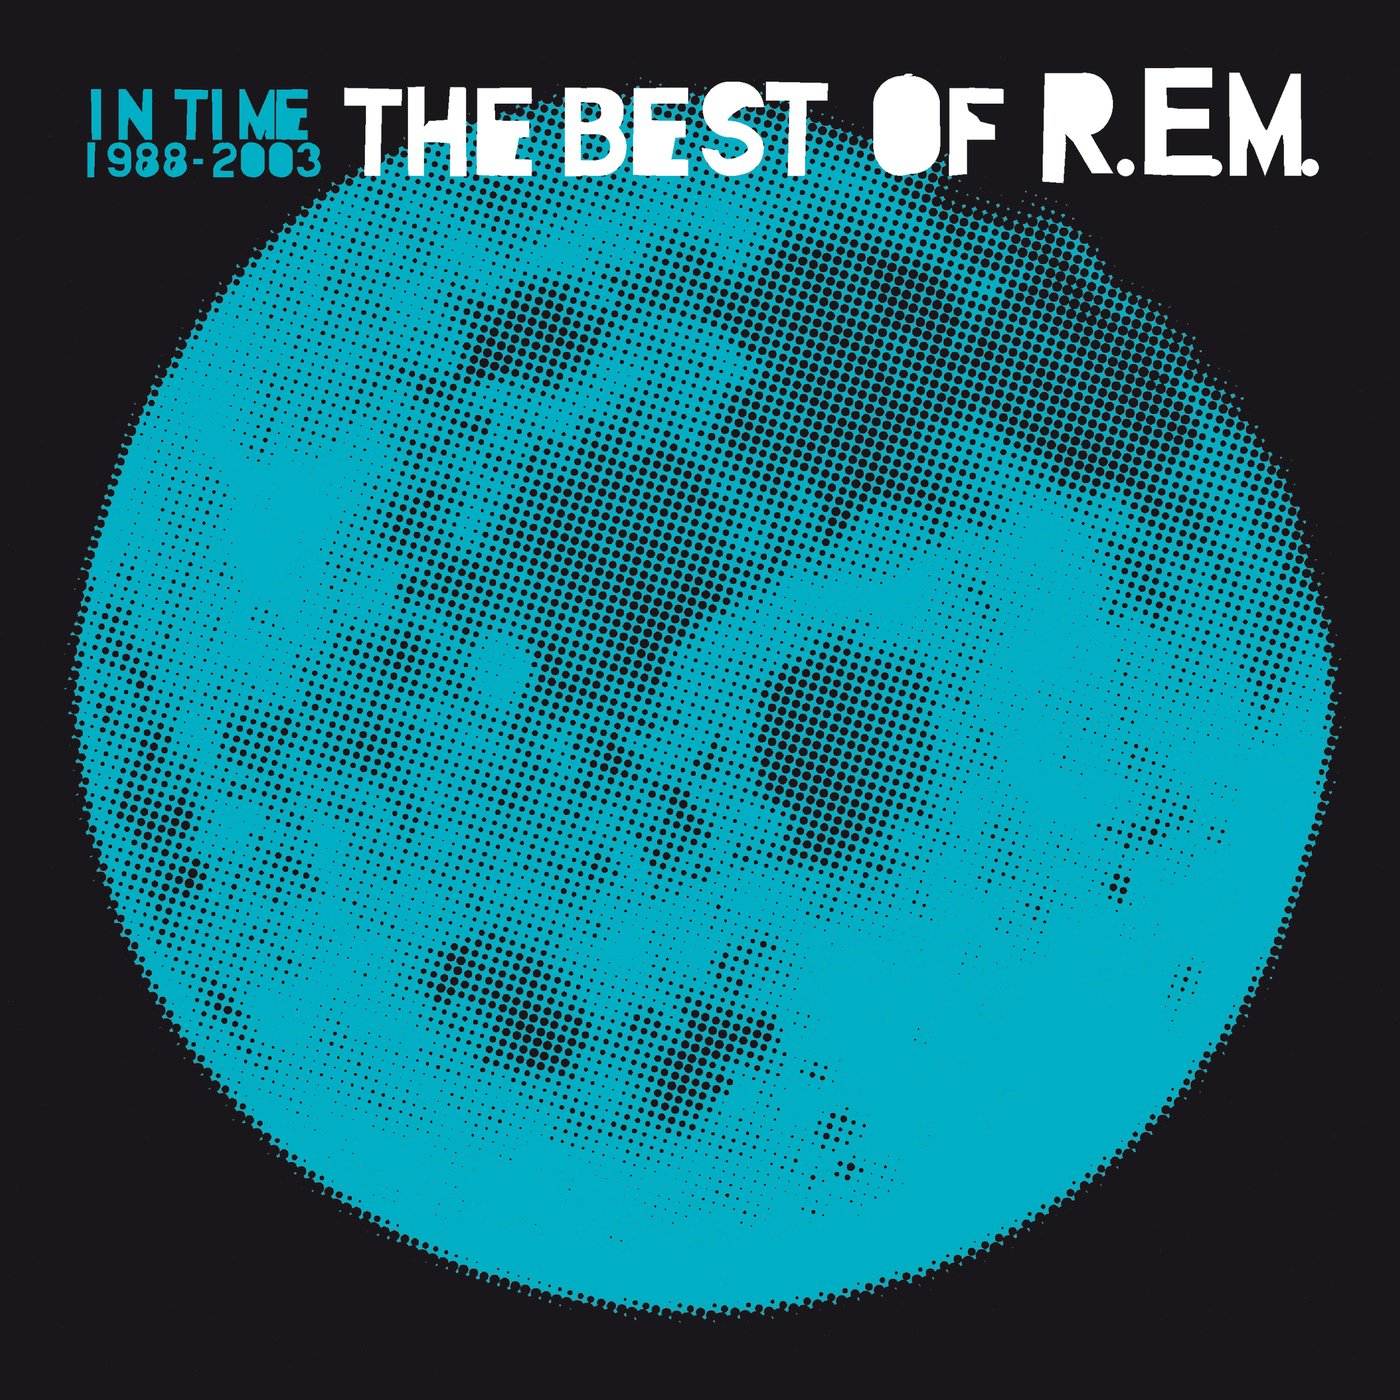 R.E.M., In Time: The Best of R.E.M. 1988-2003